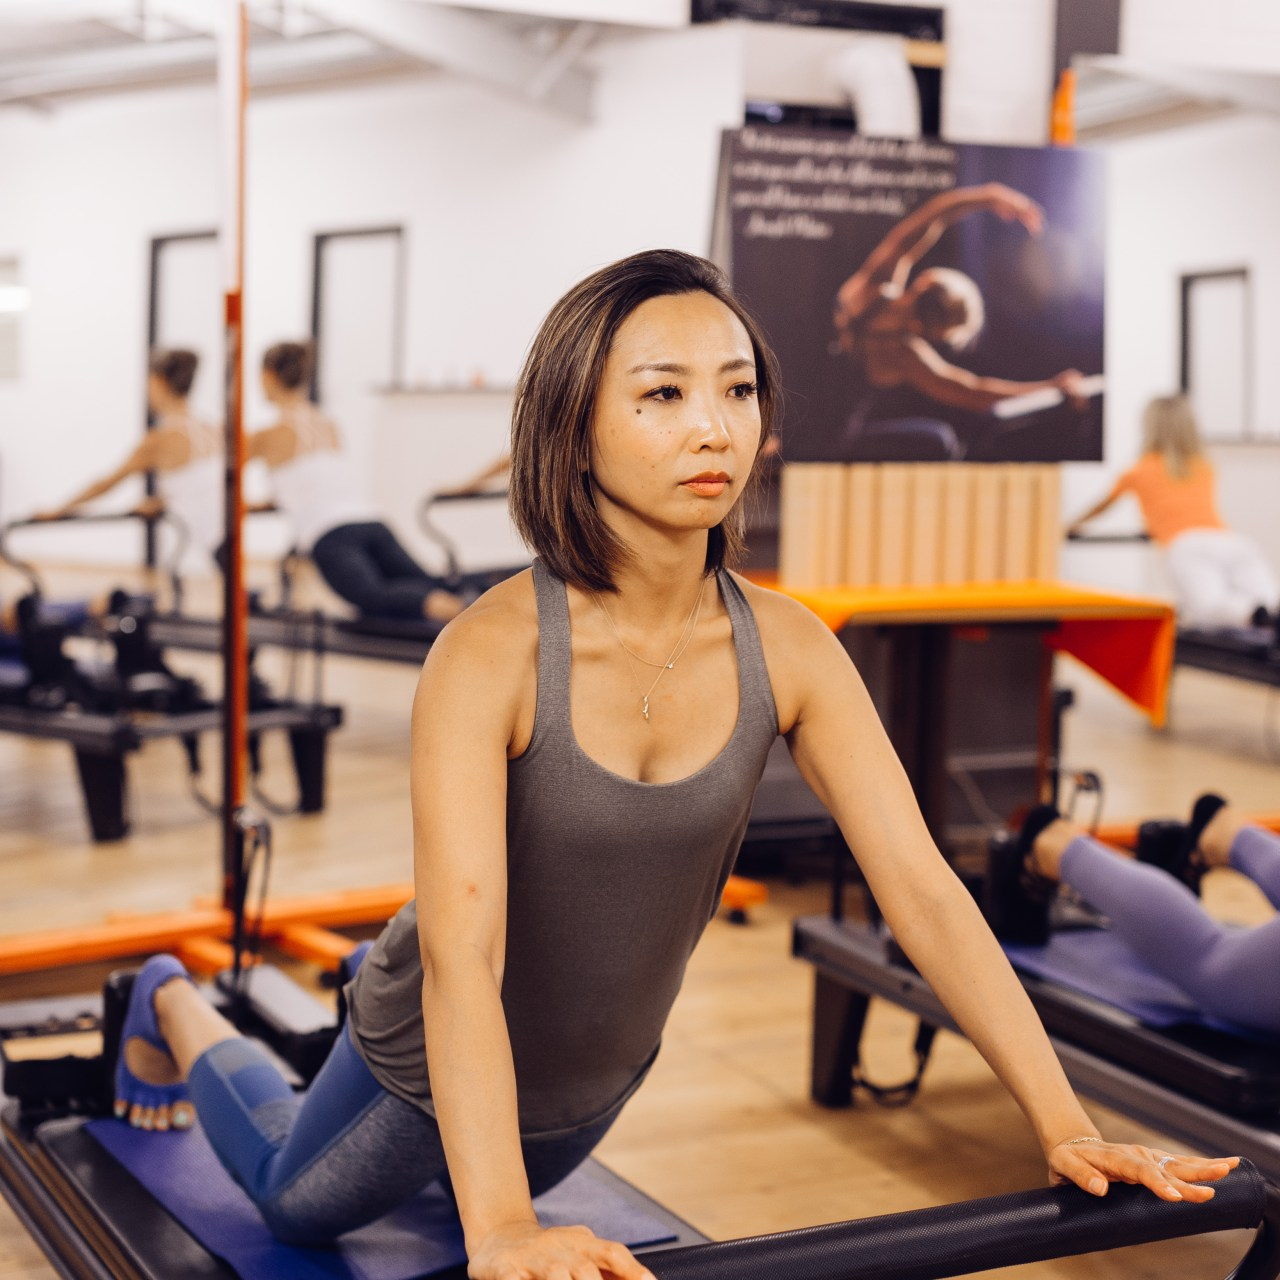 best pilates reformer studio henley on thames oxfordshire nubodi pilates180925-annarachelphotography-0468